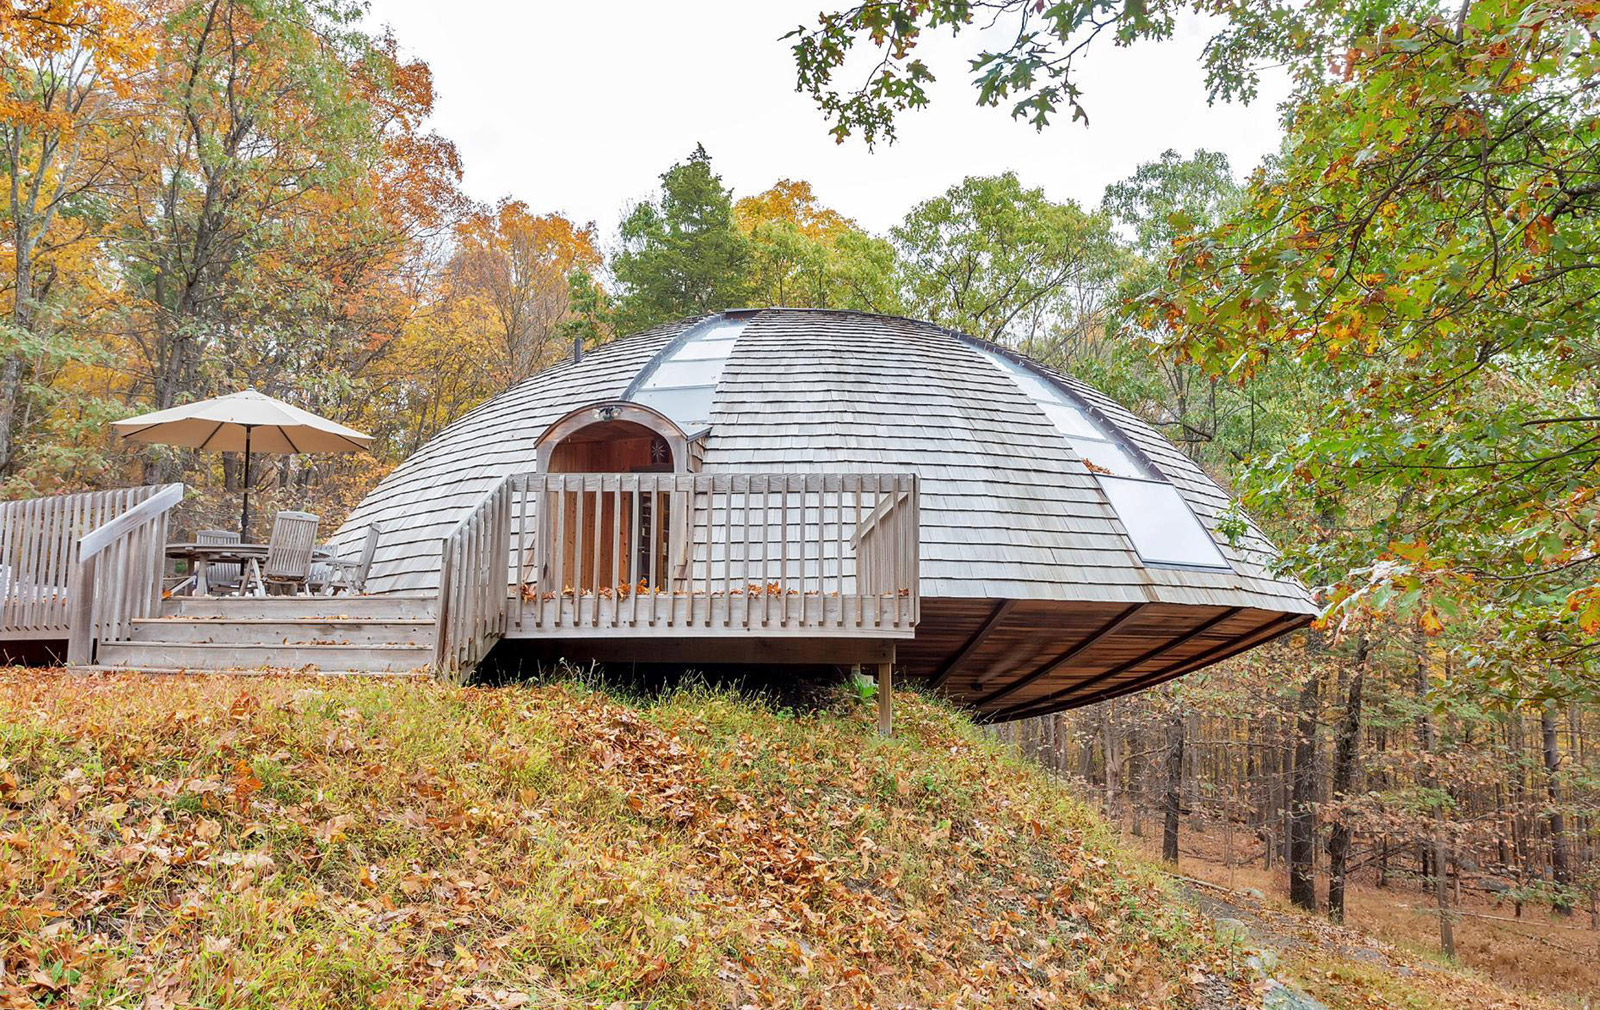 Dome homes to call your own - The Spaces